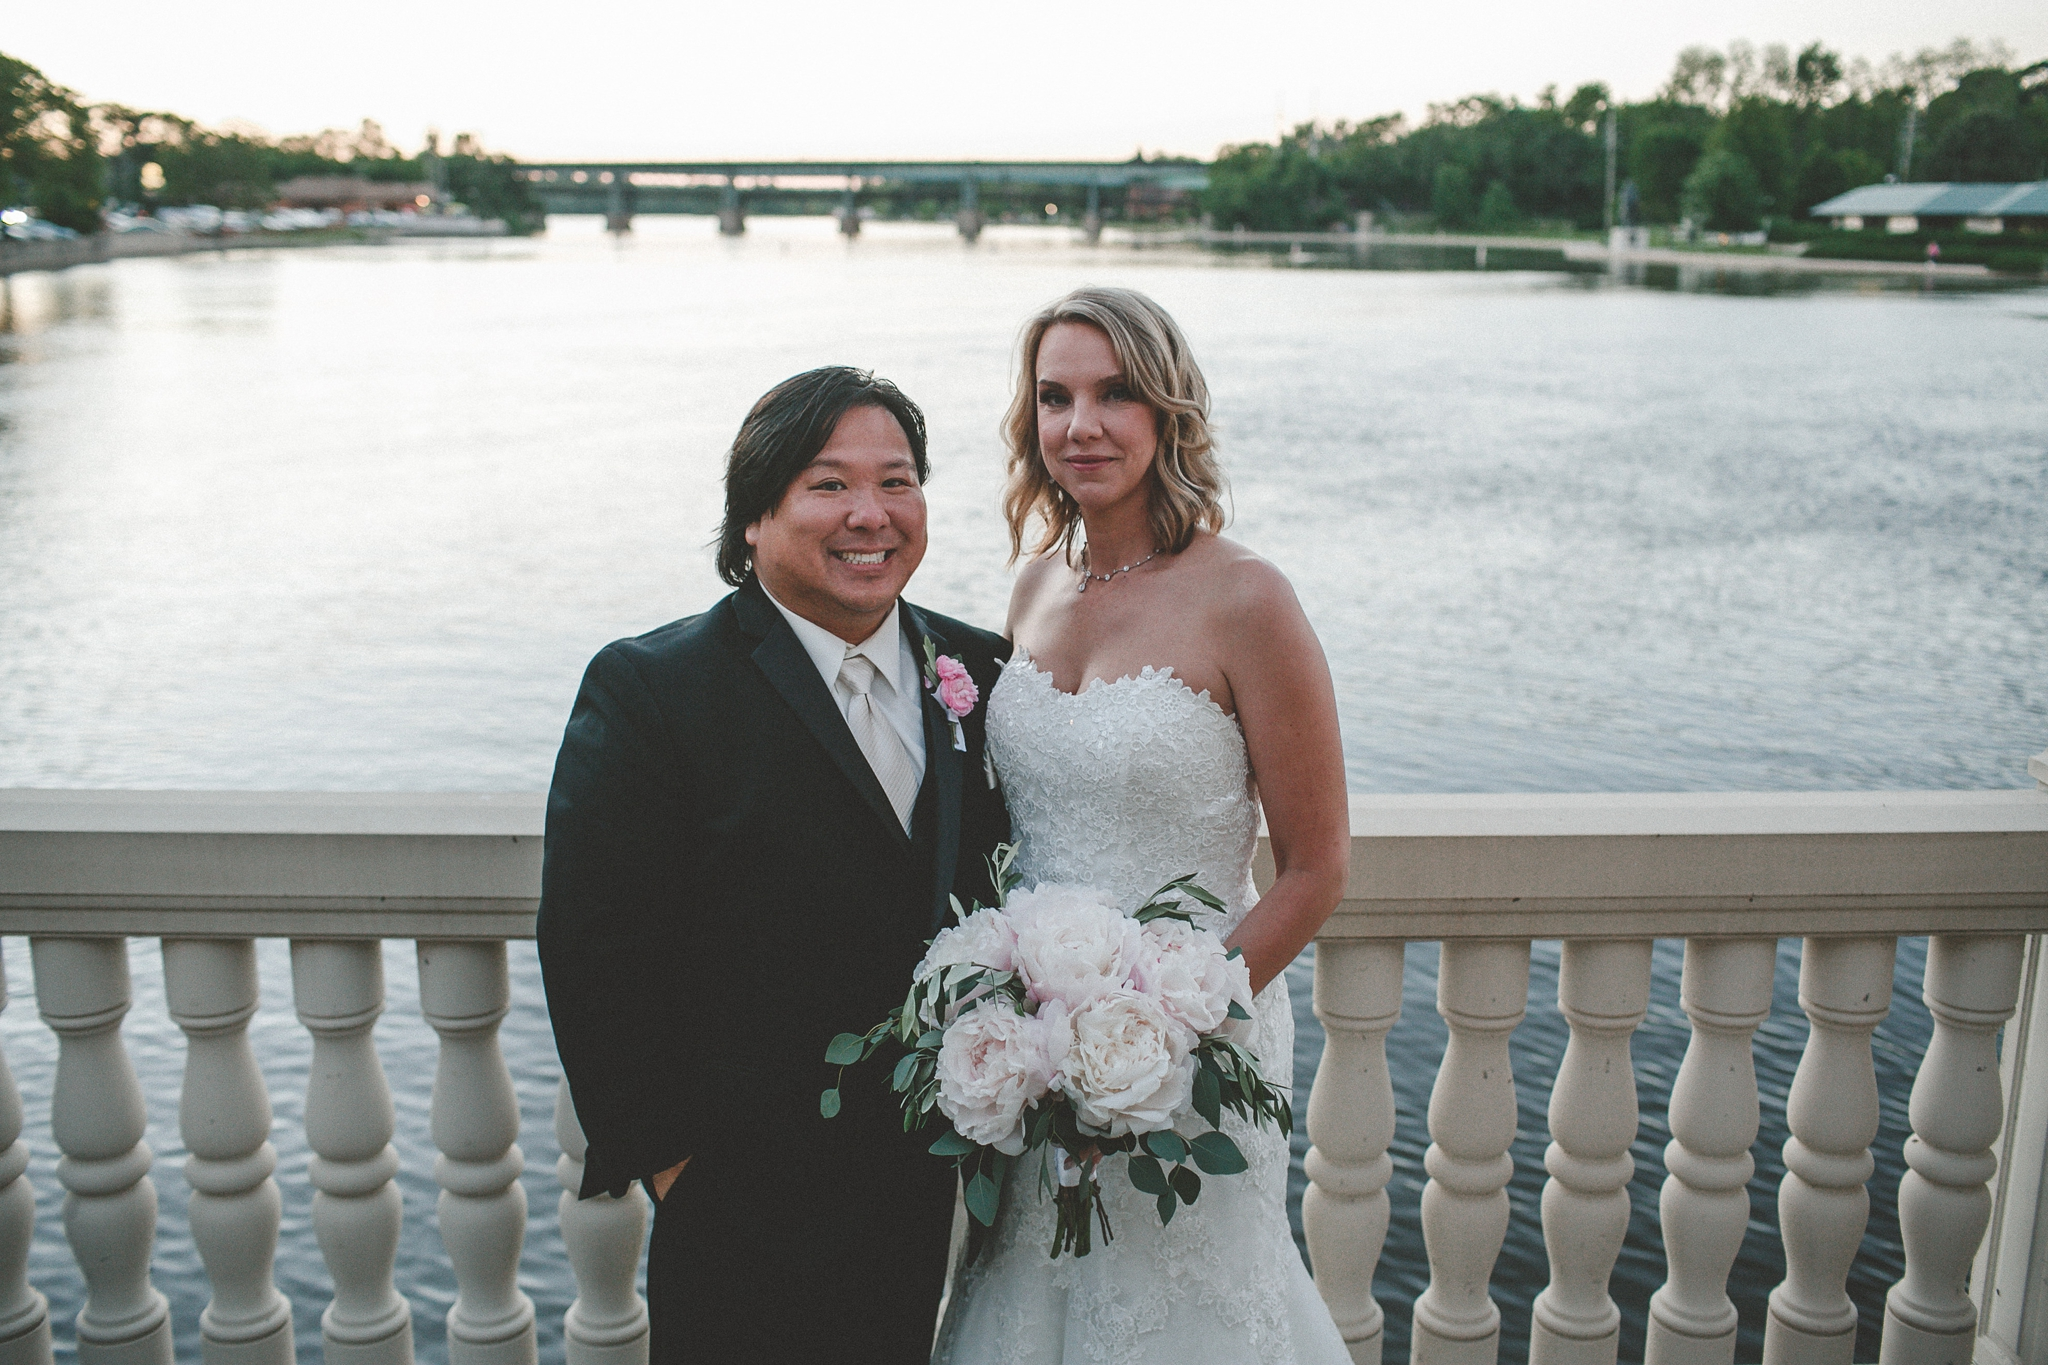 hotel_baker_st_charles_IL_wedding_photographer_0066.jpg